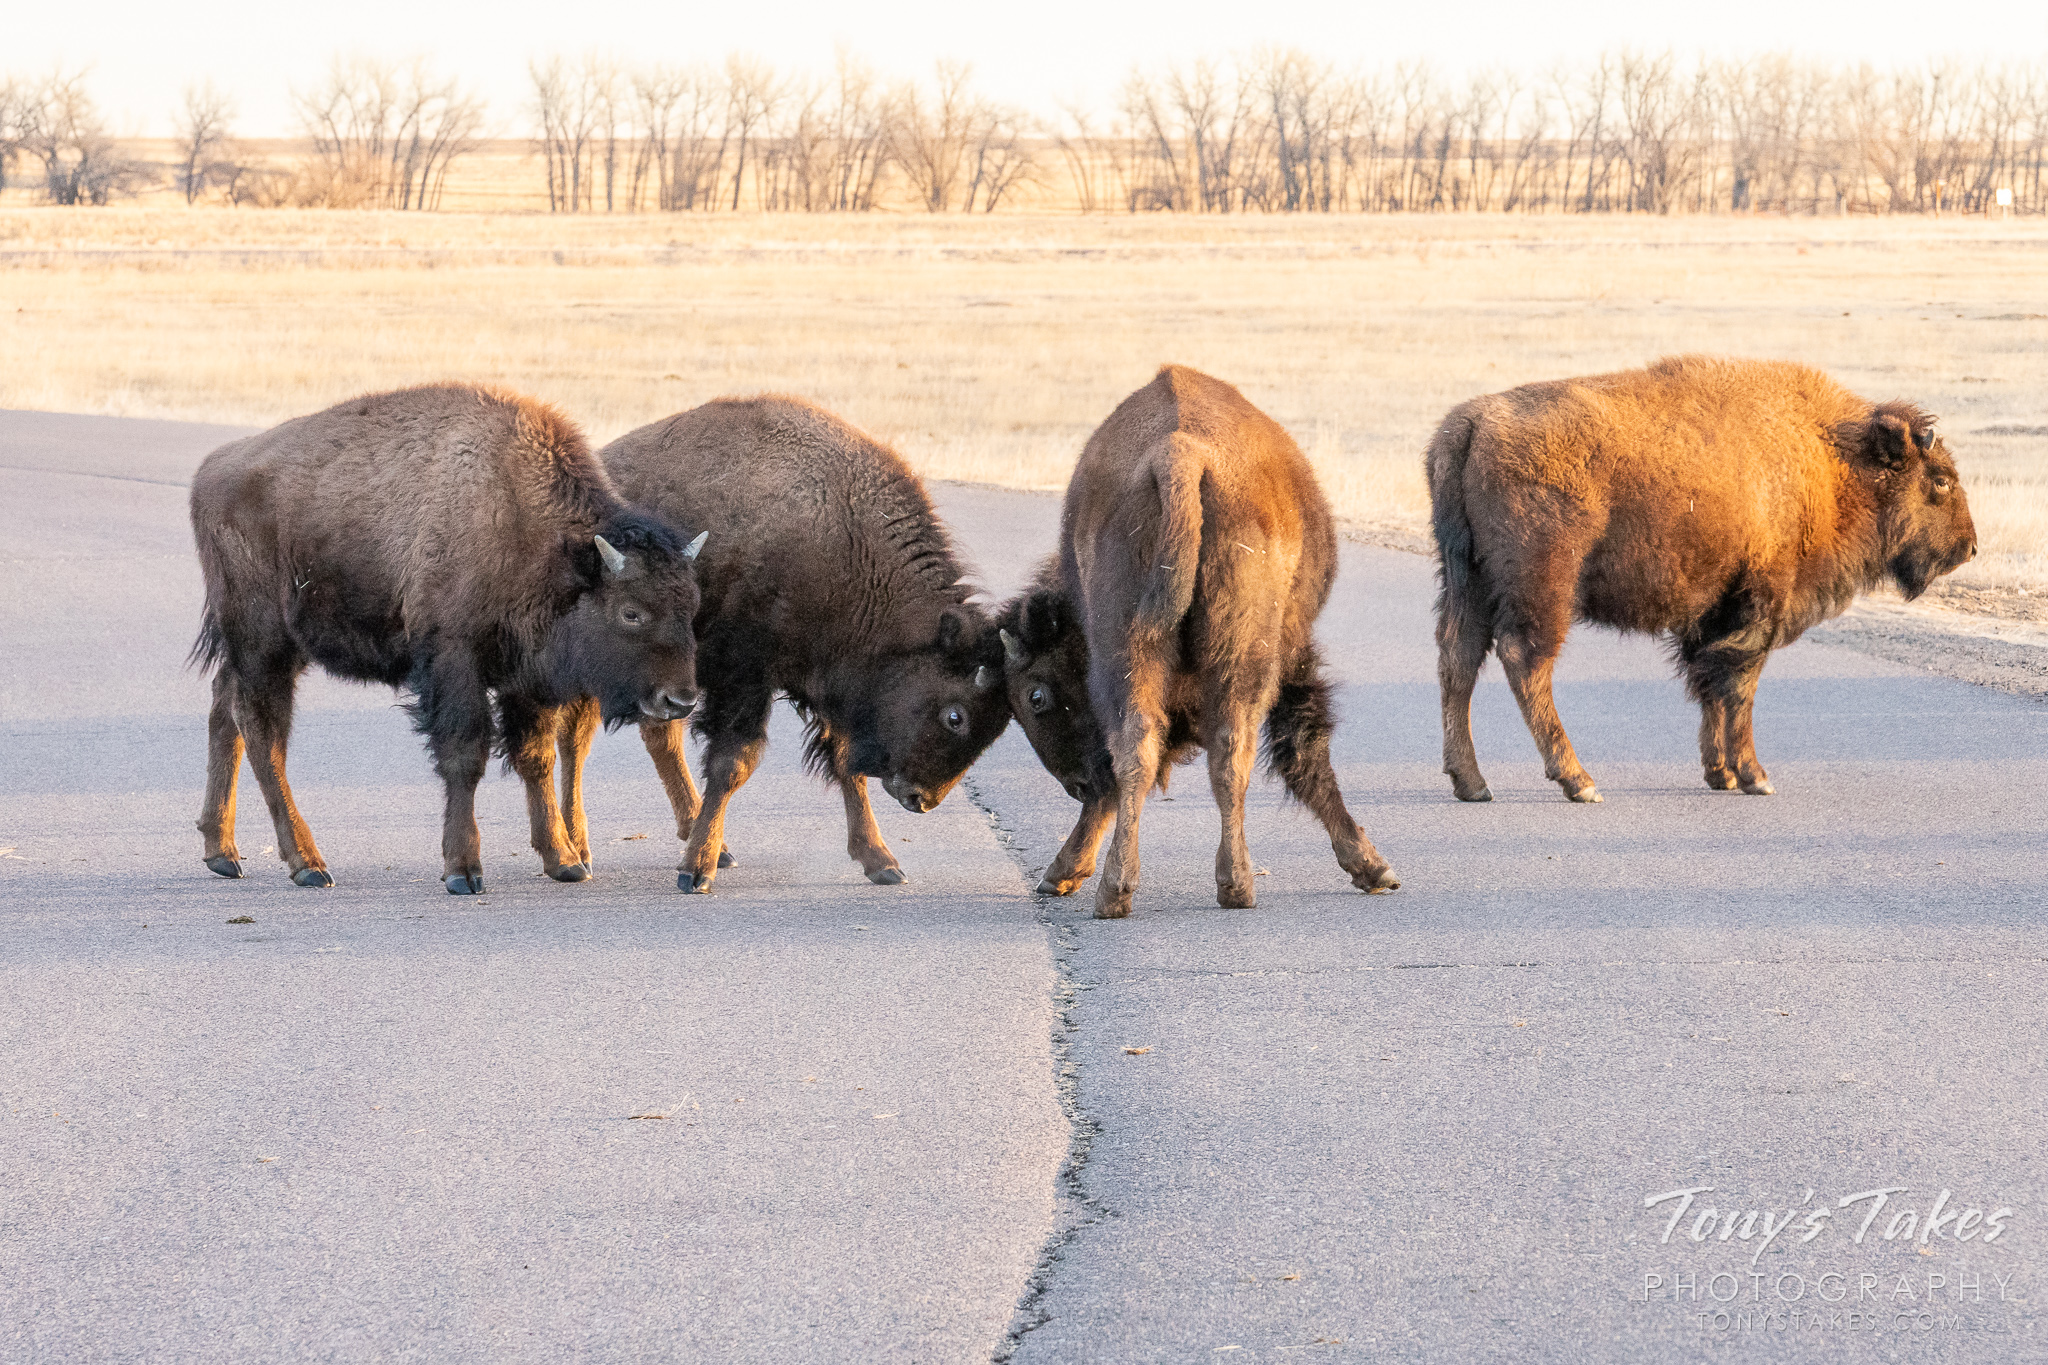 Bison calves play in the road at the Rocky Mountain Arsenal National Wildlife Refuge. (© Tony's Takes)